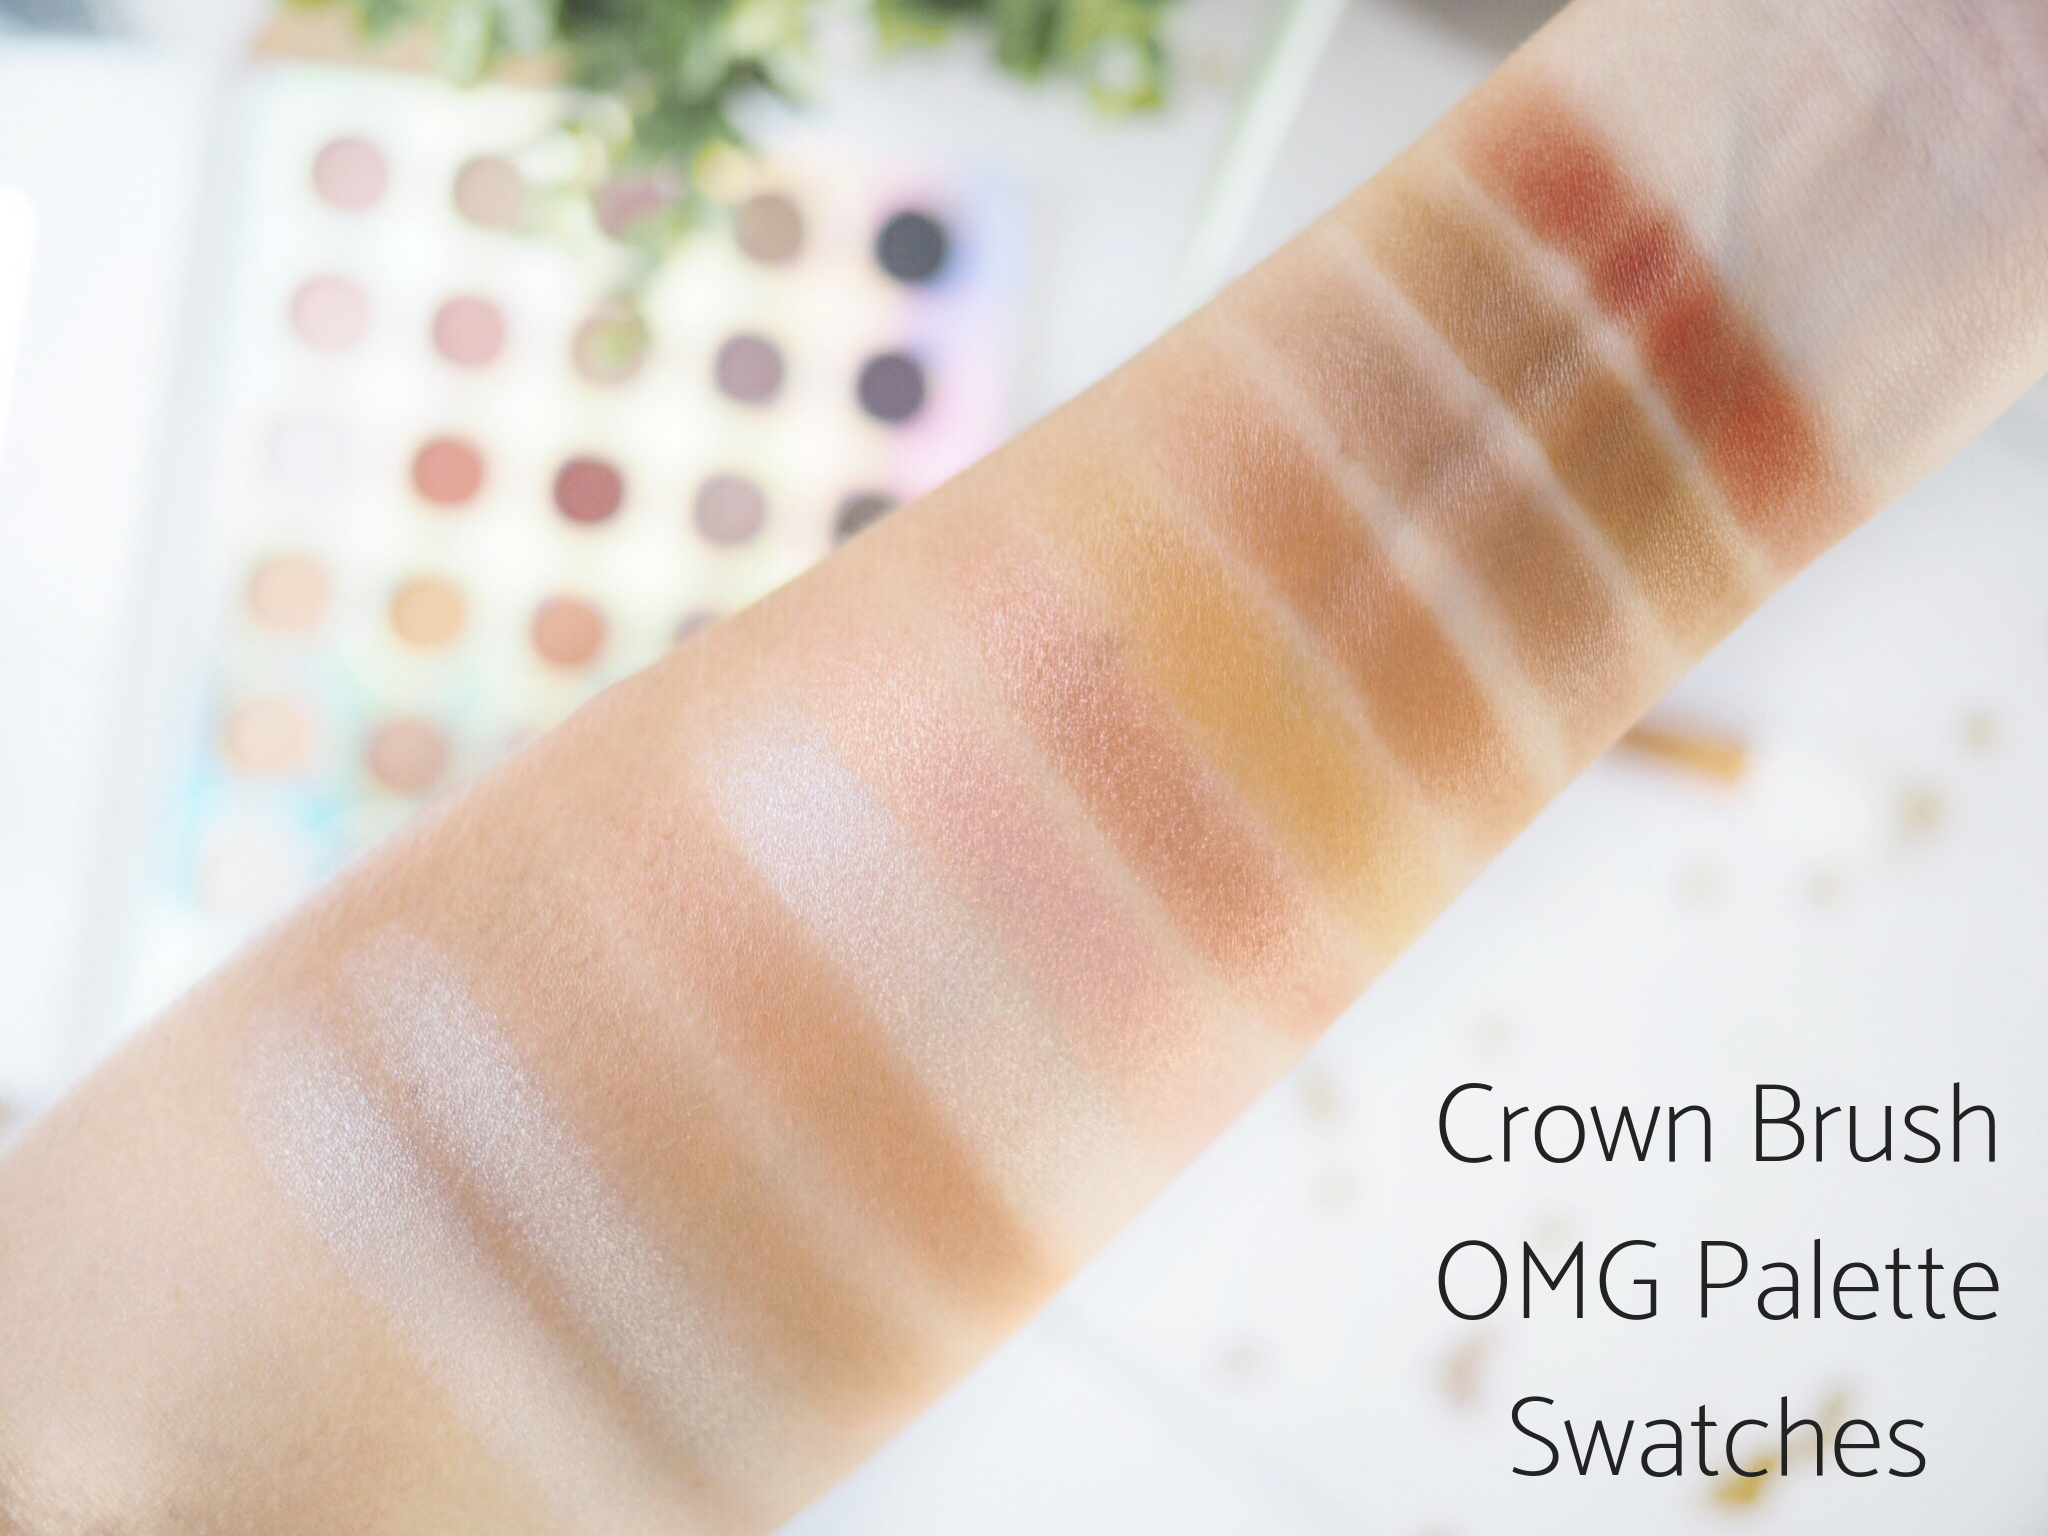 Crown Brush OMG Palette Swatches